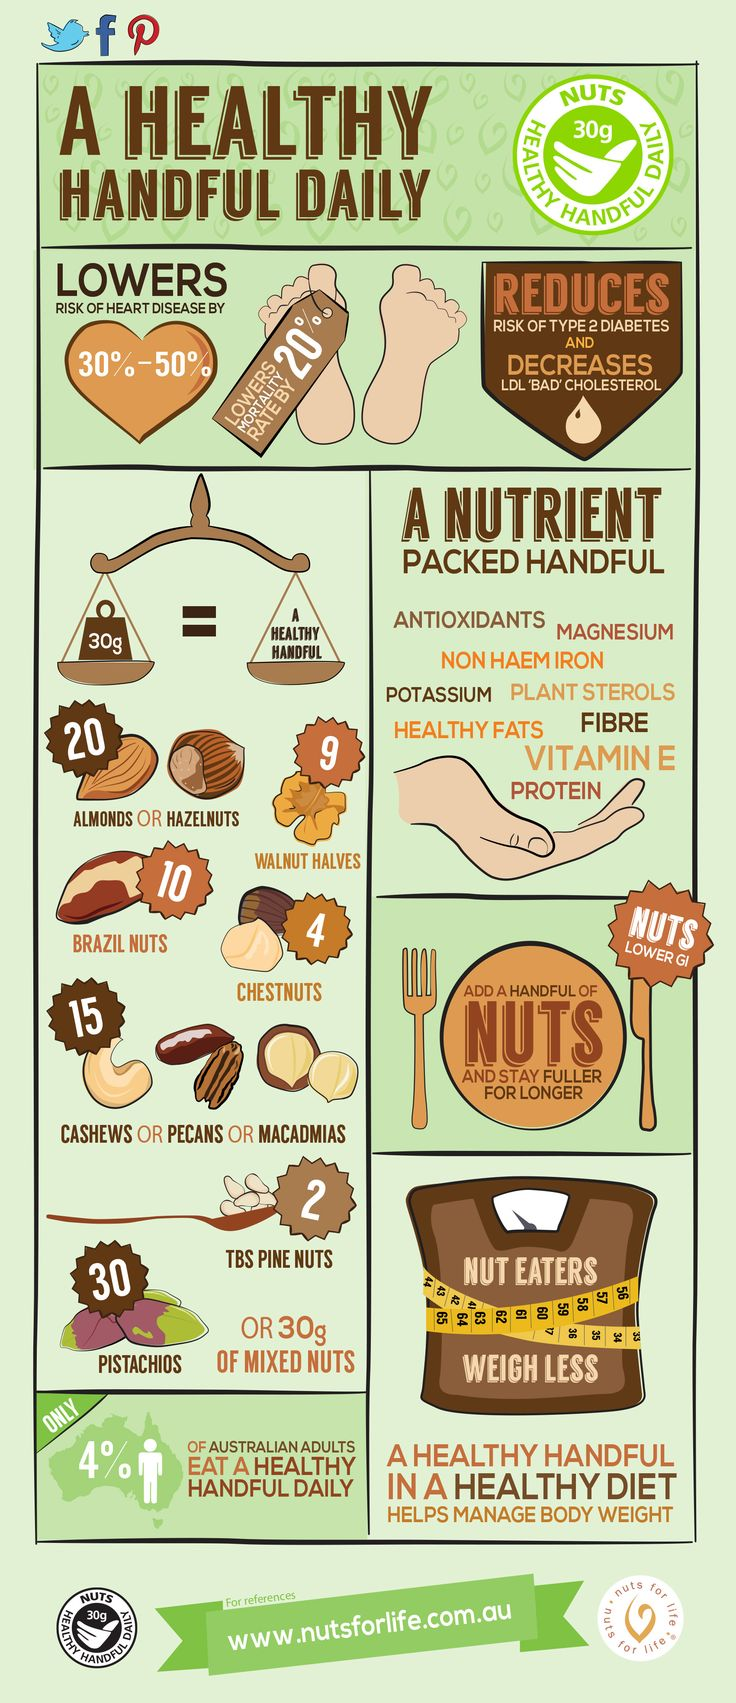 Infographic about the benefits of a daily healthy handful of nuts http://www.nutsforlife.com.au/media/infographics/